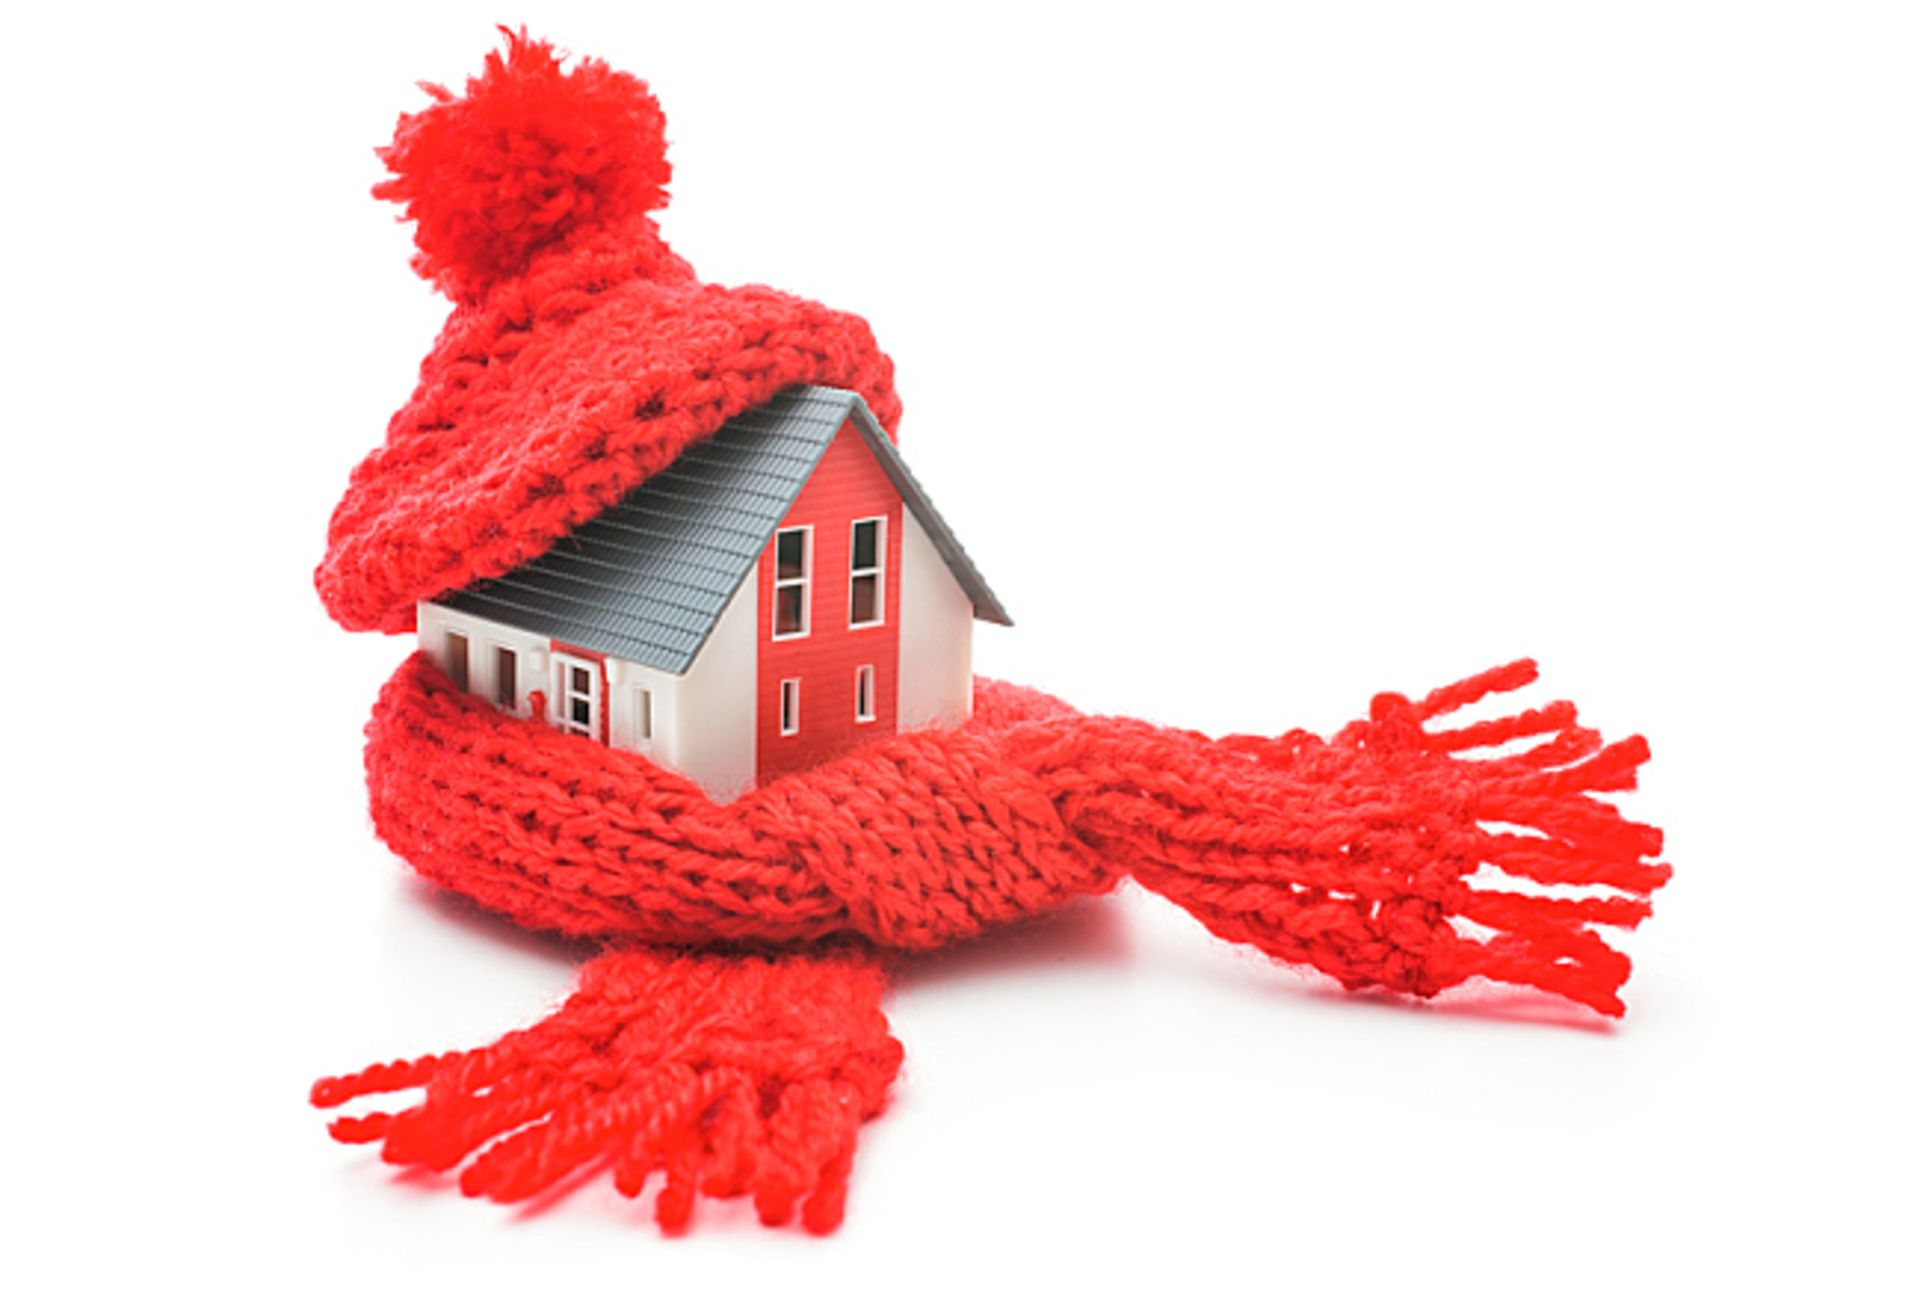 PREPARING YOUR HOME FOR THIS WINTER SEASON